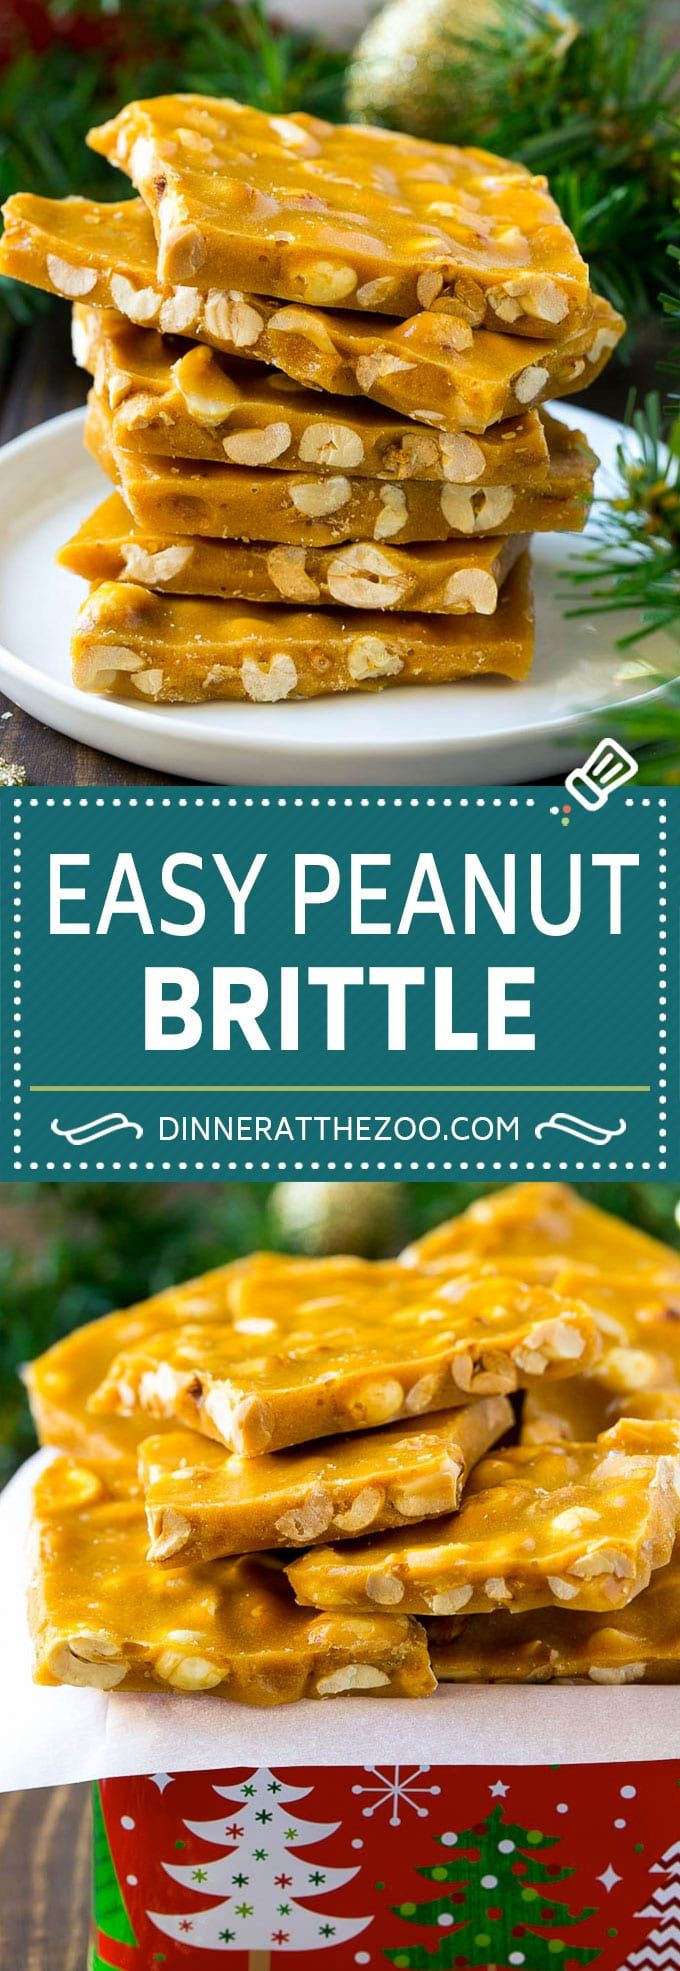 Peanut Brittle Recipe   Peanut Candy   Homemade Candy candy peanuts dessert sweets dinneratthezoo christmas is part of Candy recipes homemade -